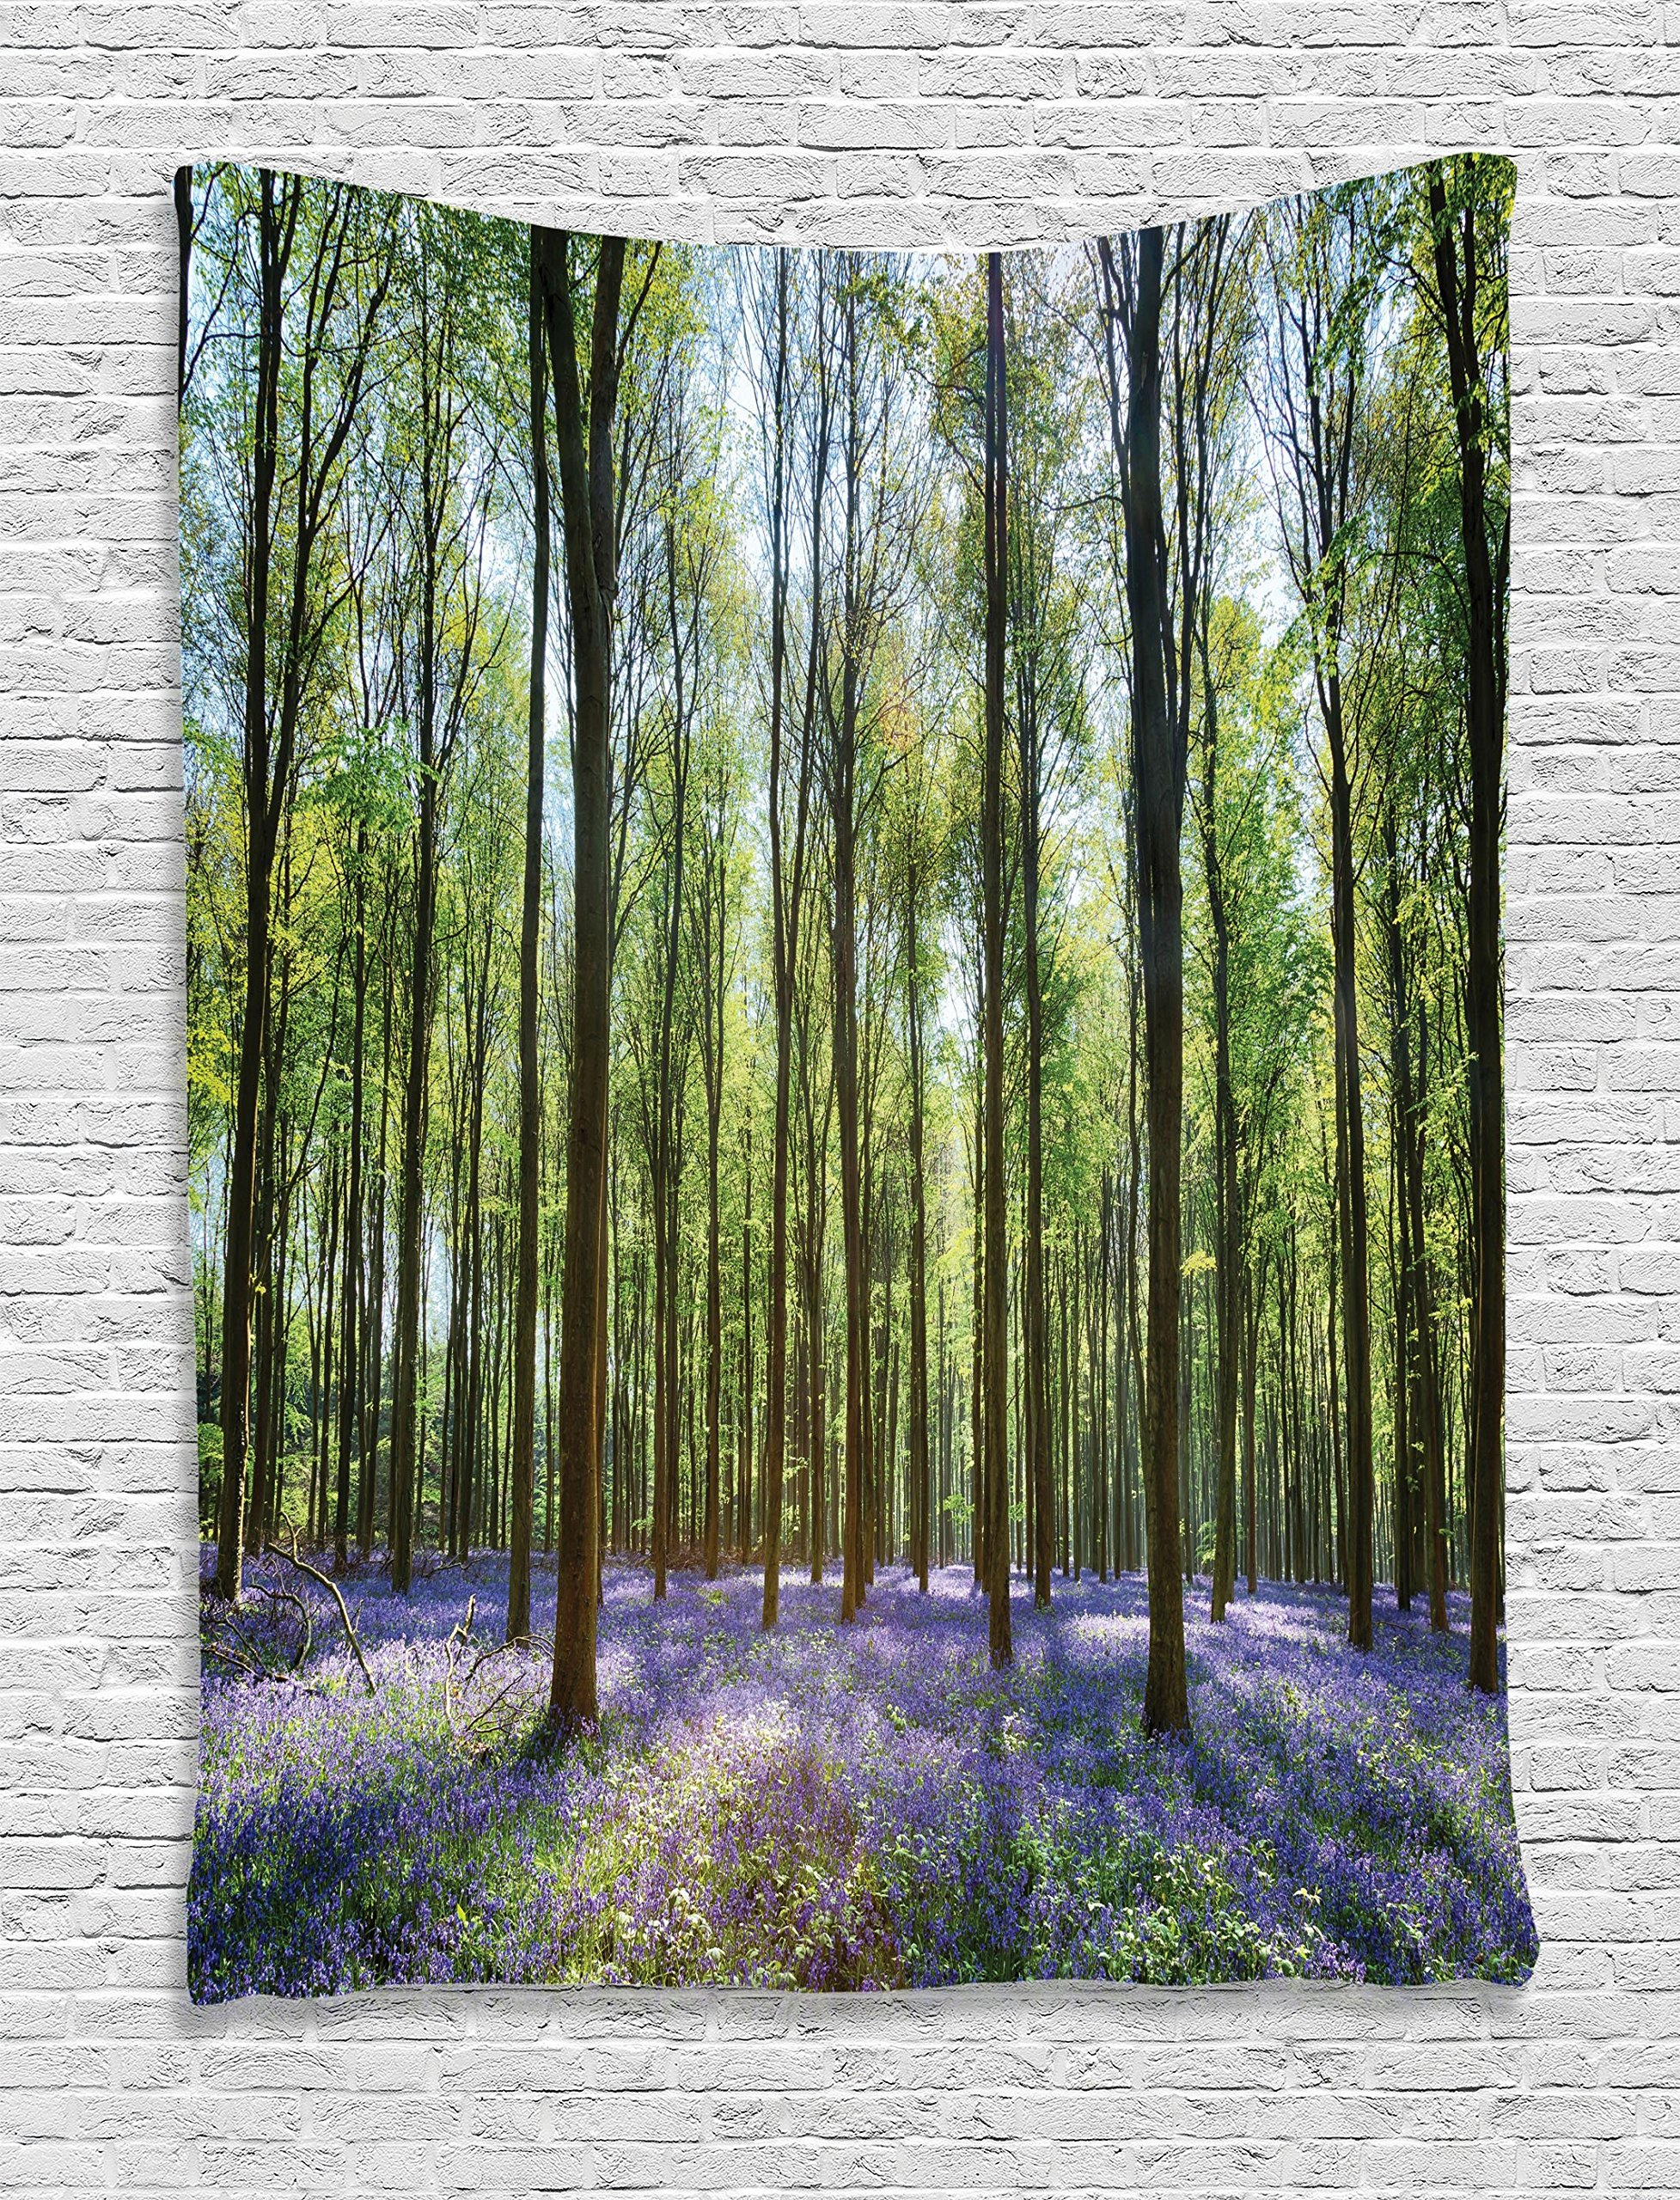 Ambesonne Woodland Decor Tapestry Wall Hanging, Bluebells in Wepham Woods Landscape Flowers Rural Countryside Woodland, Bedroom Living Room Dorm Decor, 60 W x 80 L inches